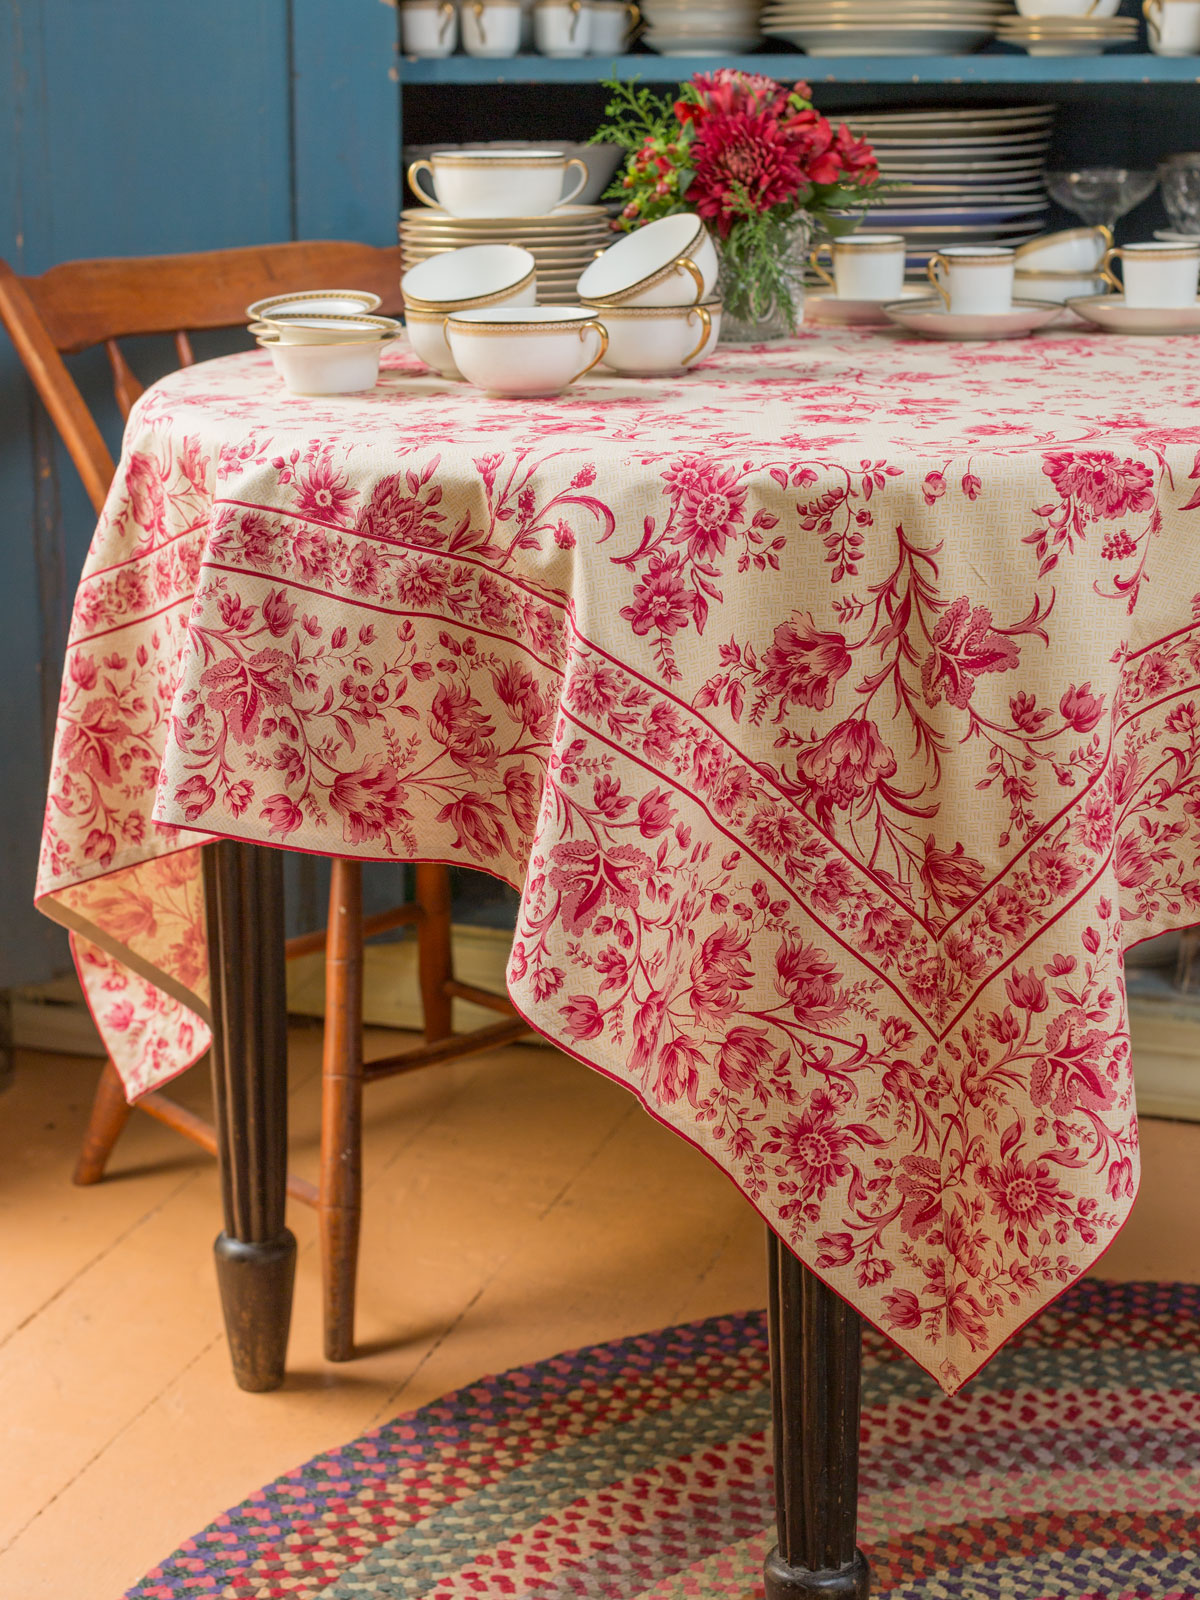 Grandmothers Room Tablecloth  Linens  Kitchen